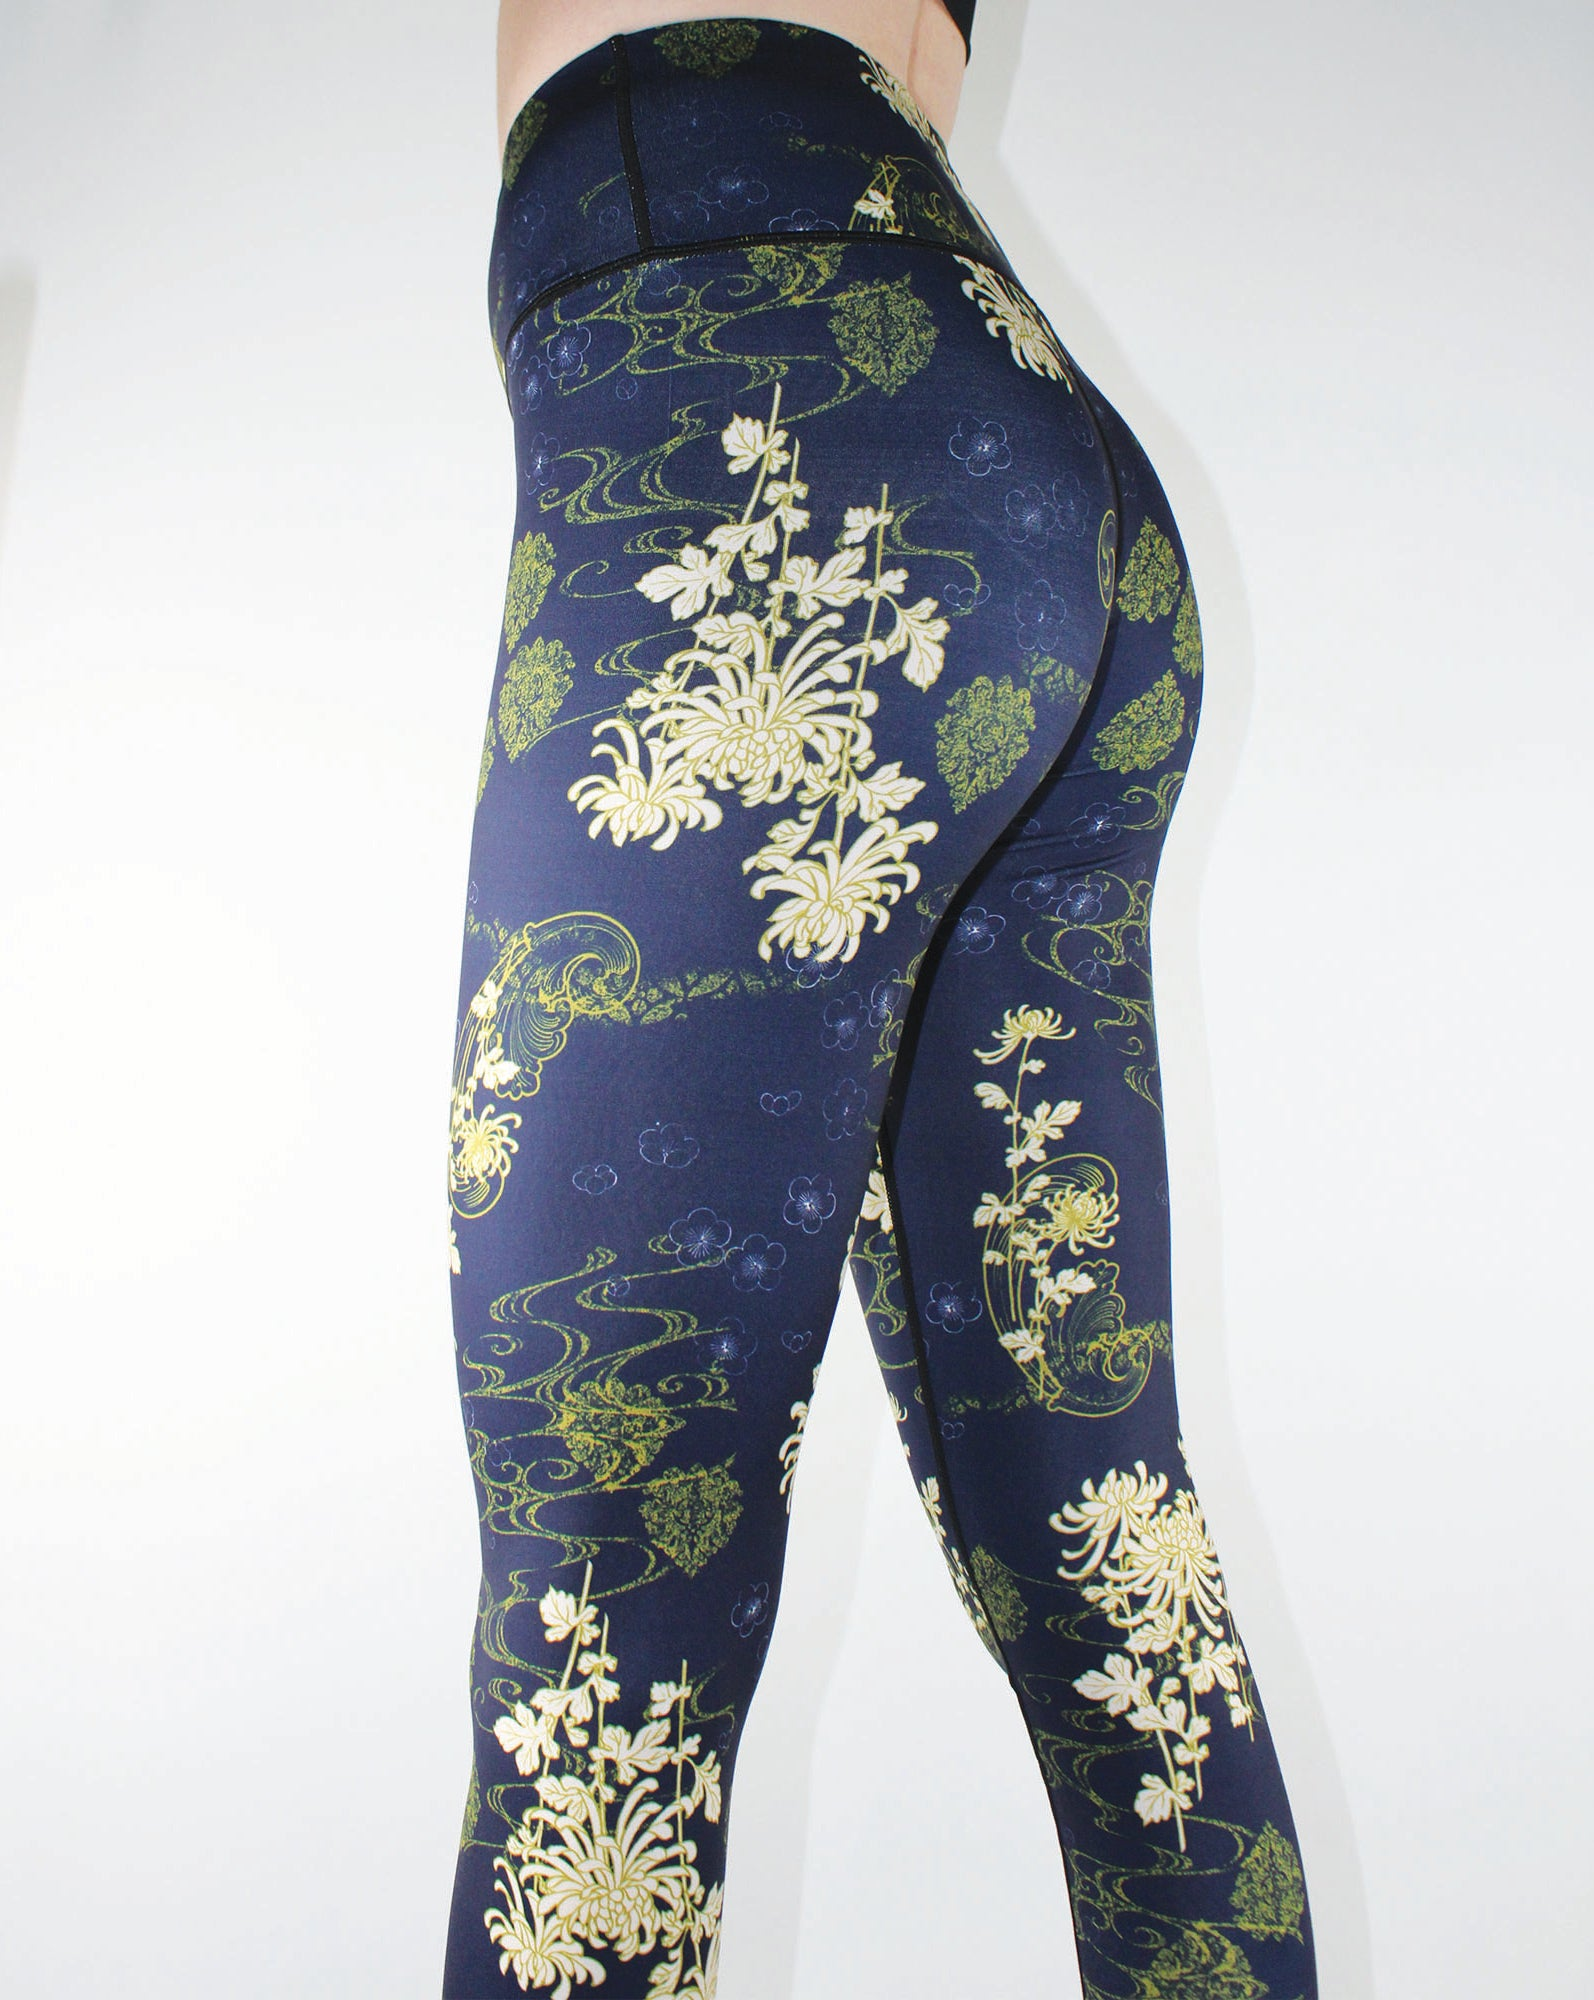 LUCIA WILD FLOWER WOMEN'S YOGA LEGGINGS-INSPIRA COLLECTION